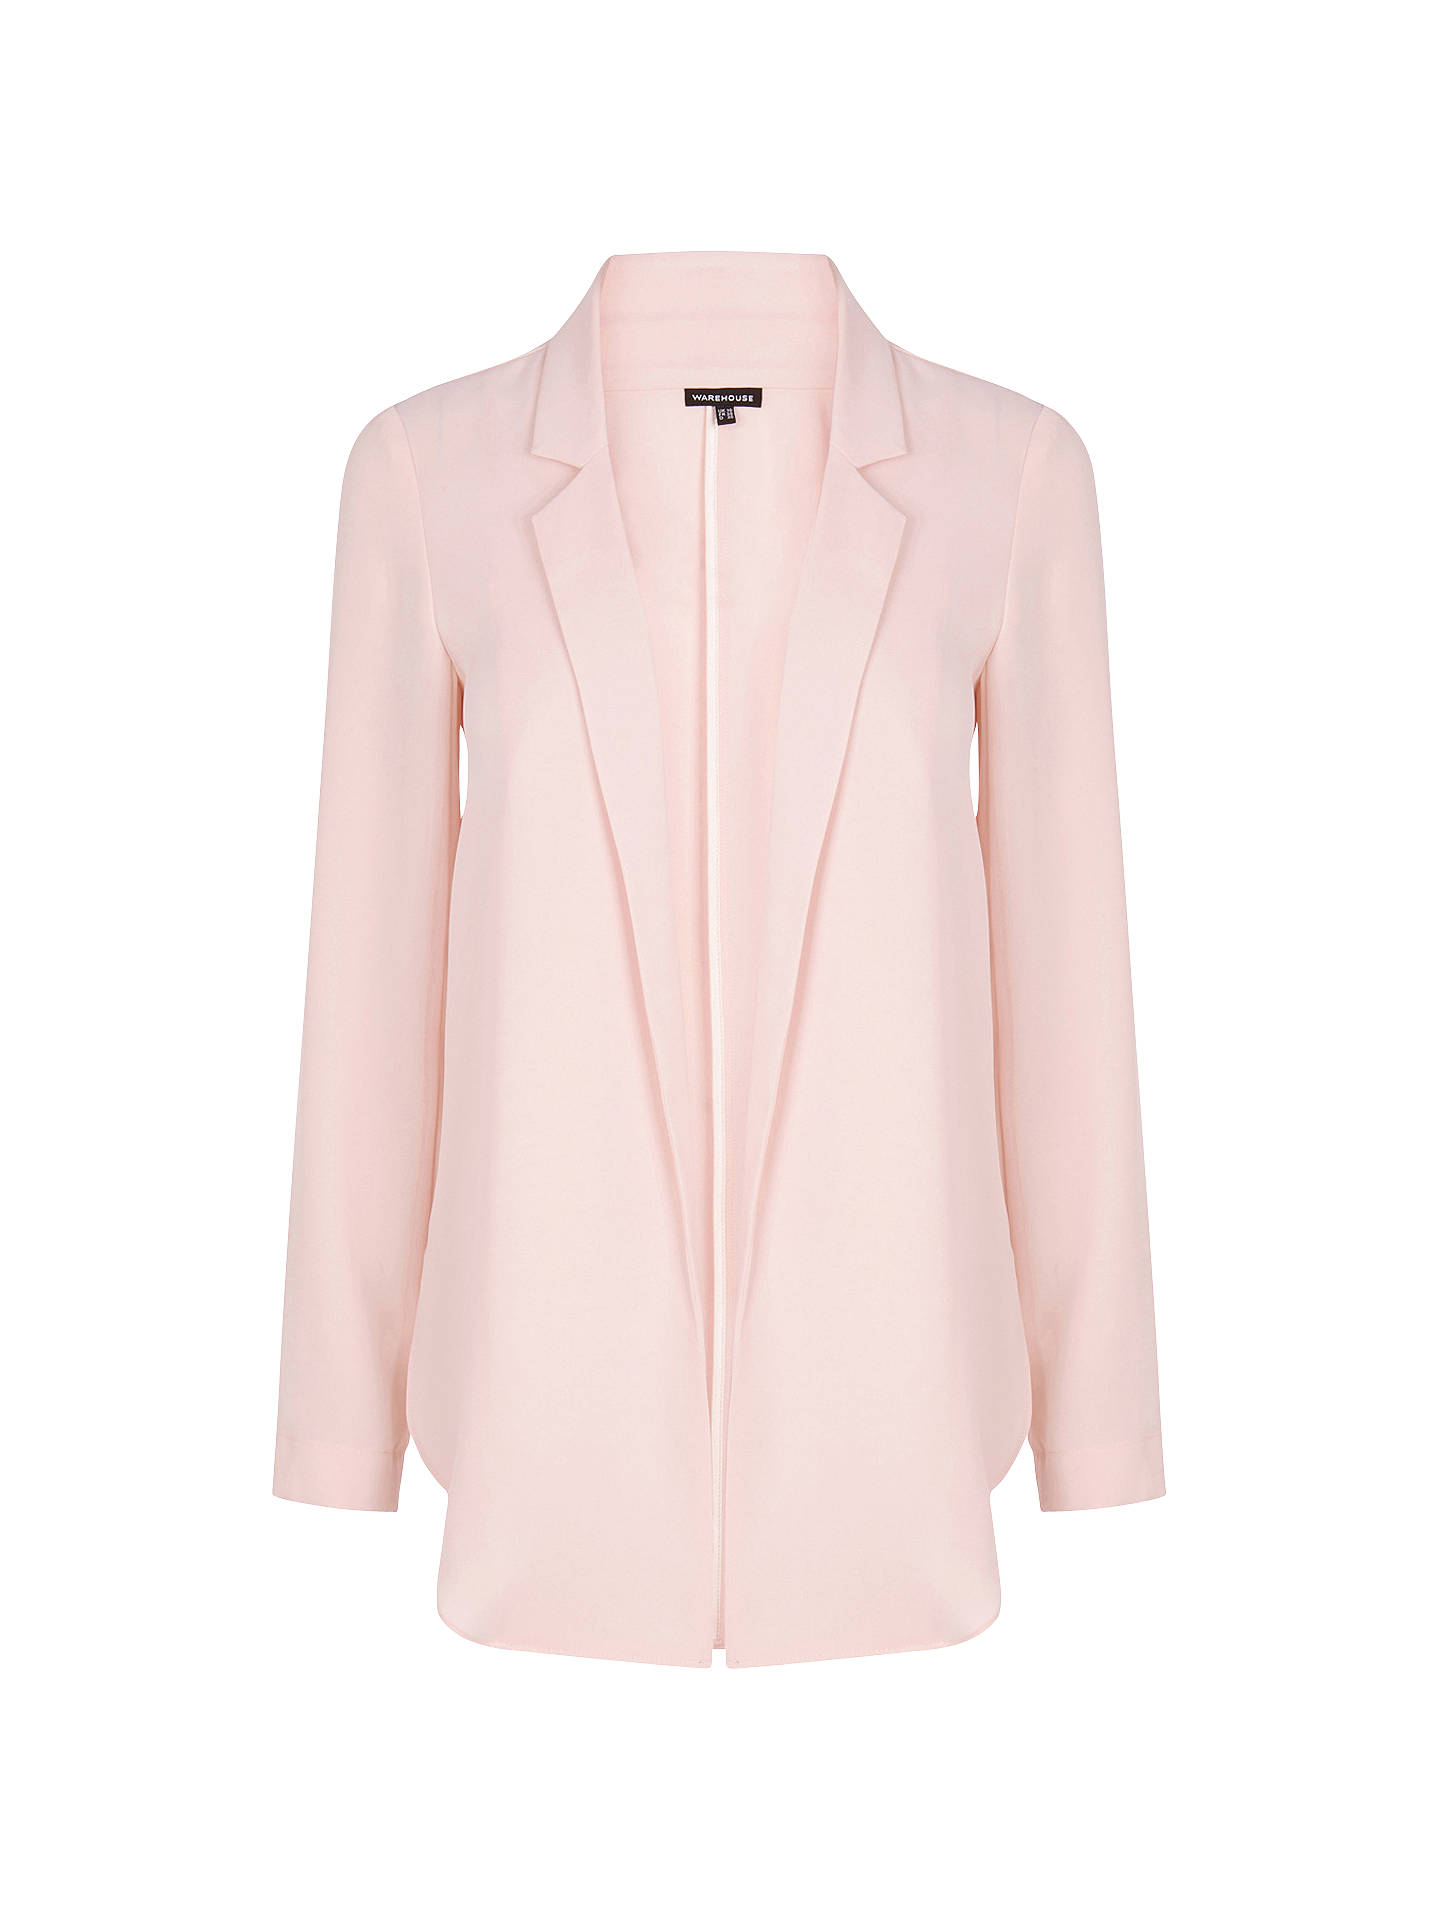 Warehouse Soft Blazer Jacket At John Lewis Partners